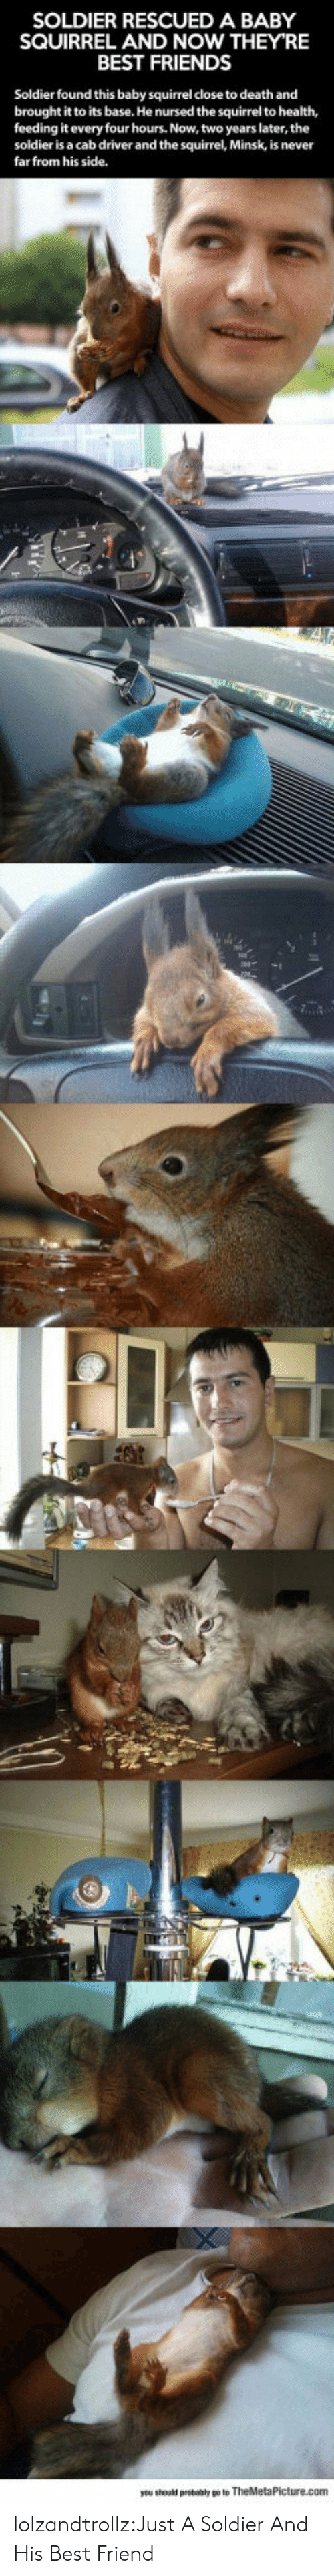 Best Friend, Friends, and Tumblr: SOLDIER RESCUED A BABY  SQUIRREL AND NOW THEY'RE  BEST FRIENDS  Soldier found this baby squirrel close to death and  brought it to its base. He nursed the squirrel to health,  feeding it every four hours. Now, two years later, the  soldier is a cab driver and the squirrel, Minsk, is never  farfrom his side. lolzandtrollz:Just A Soldier And His Best Friend